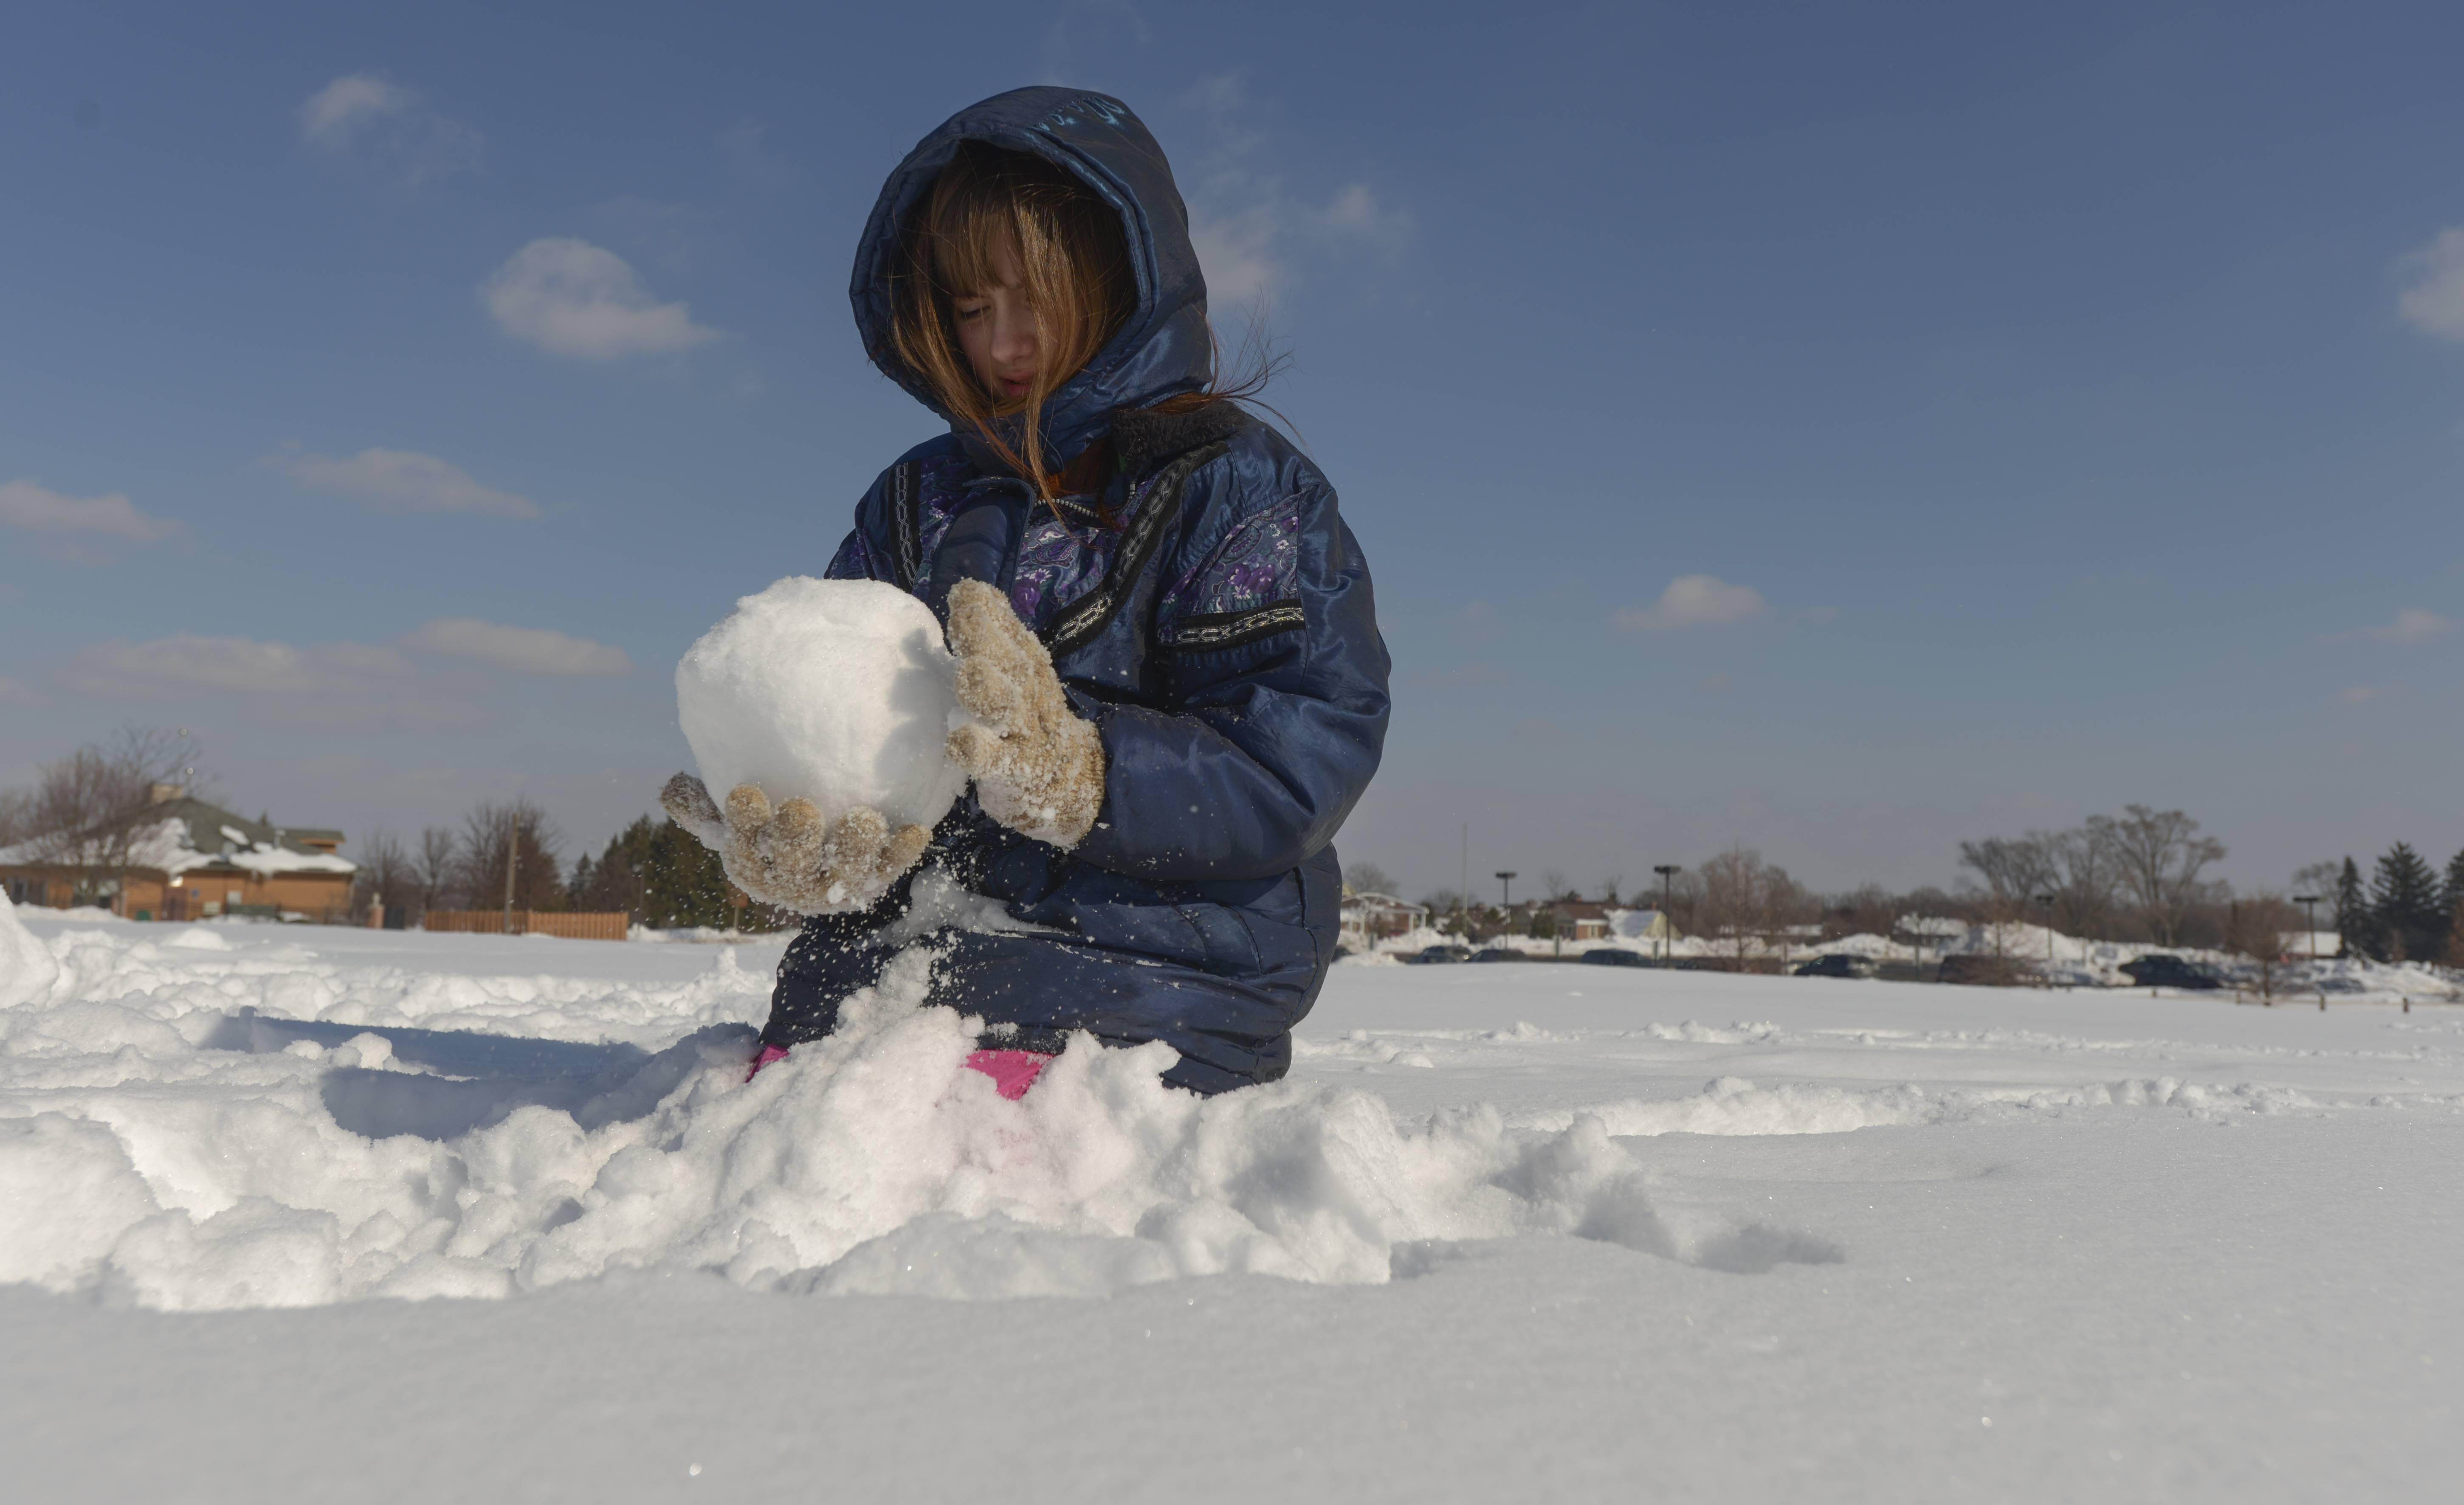 Tessa-Kay Stahulak, 11, of Wheaton works on building a Mickey Mouse snowman Sunday during the Glen Ellyn Park District's 2nd annual Arctic Blast event at Maryknoll Park.